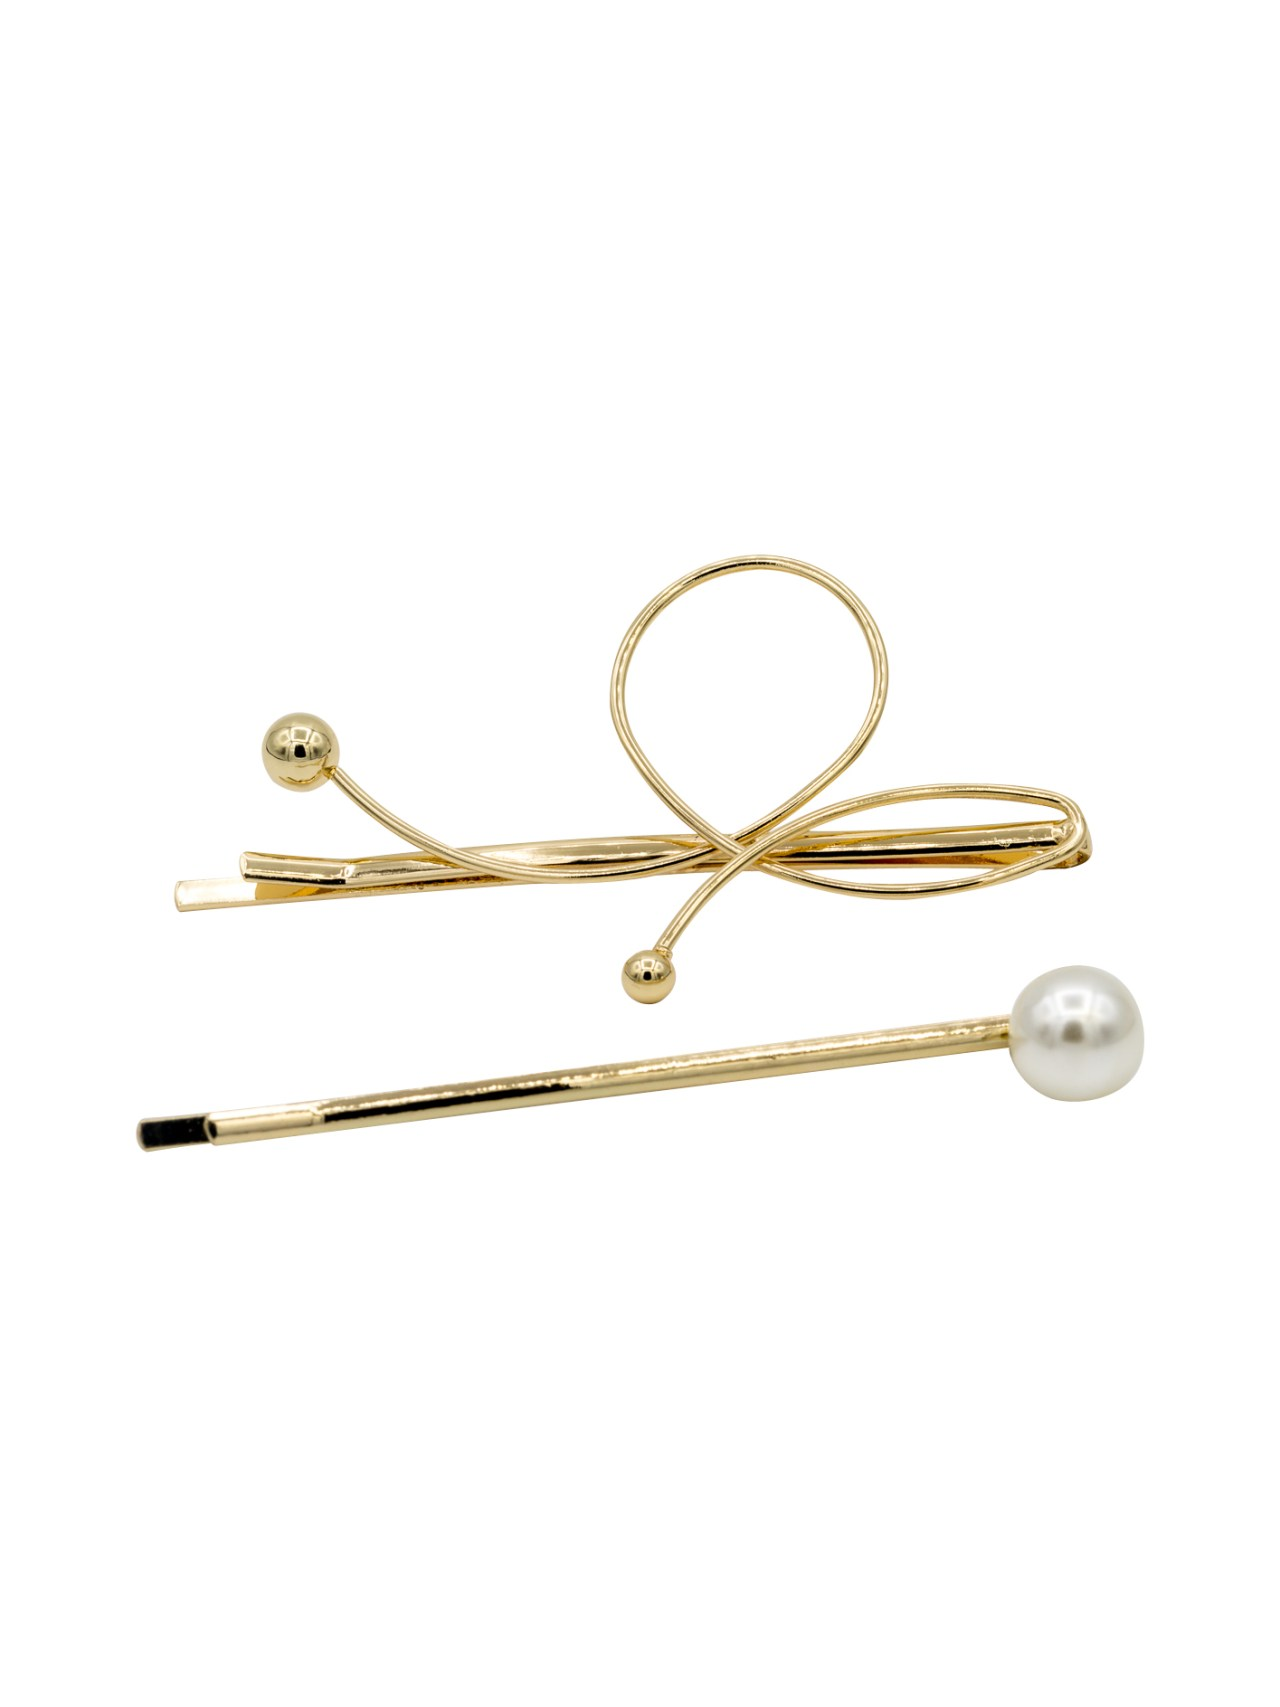 gold twisted metal bobby pins set